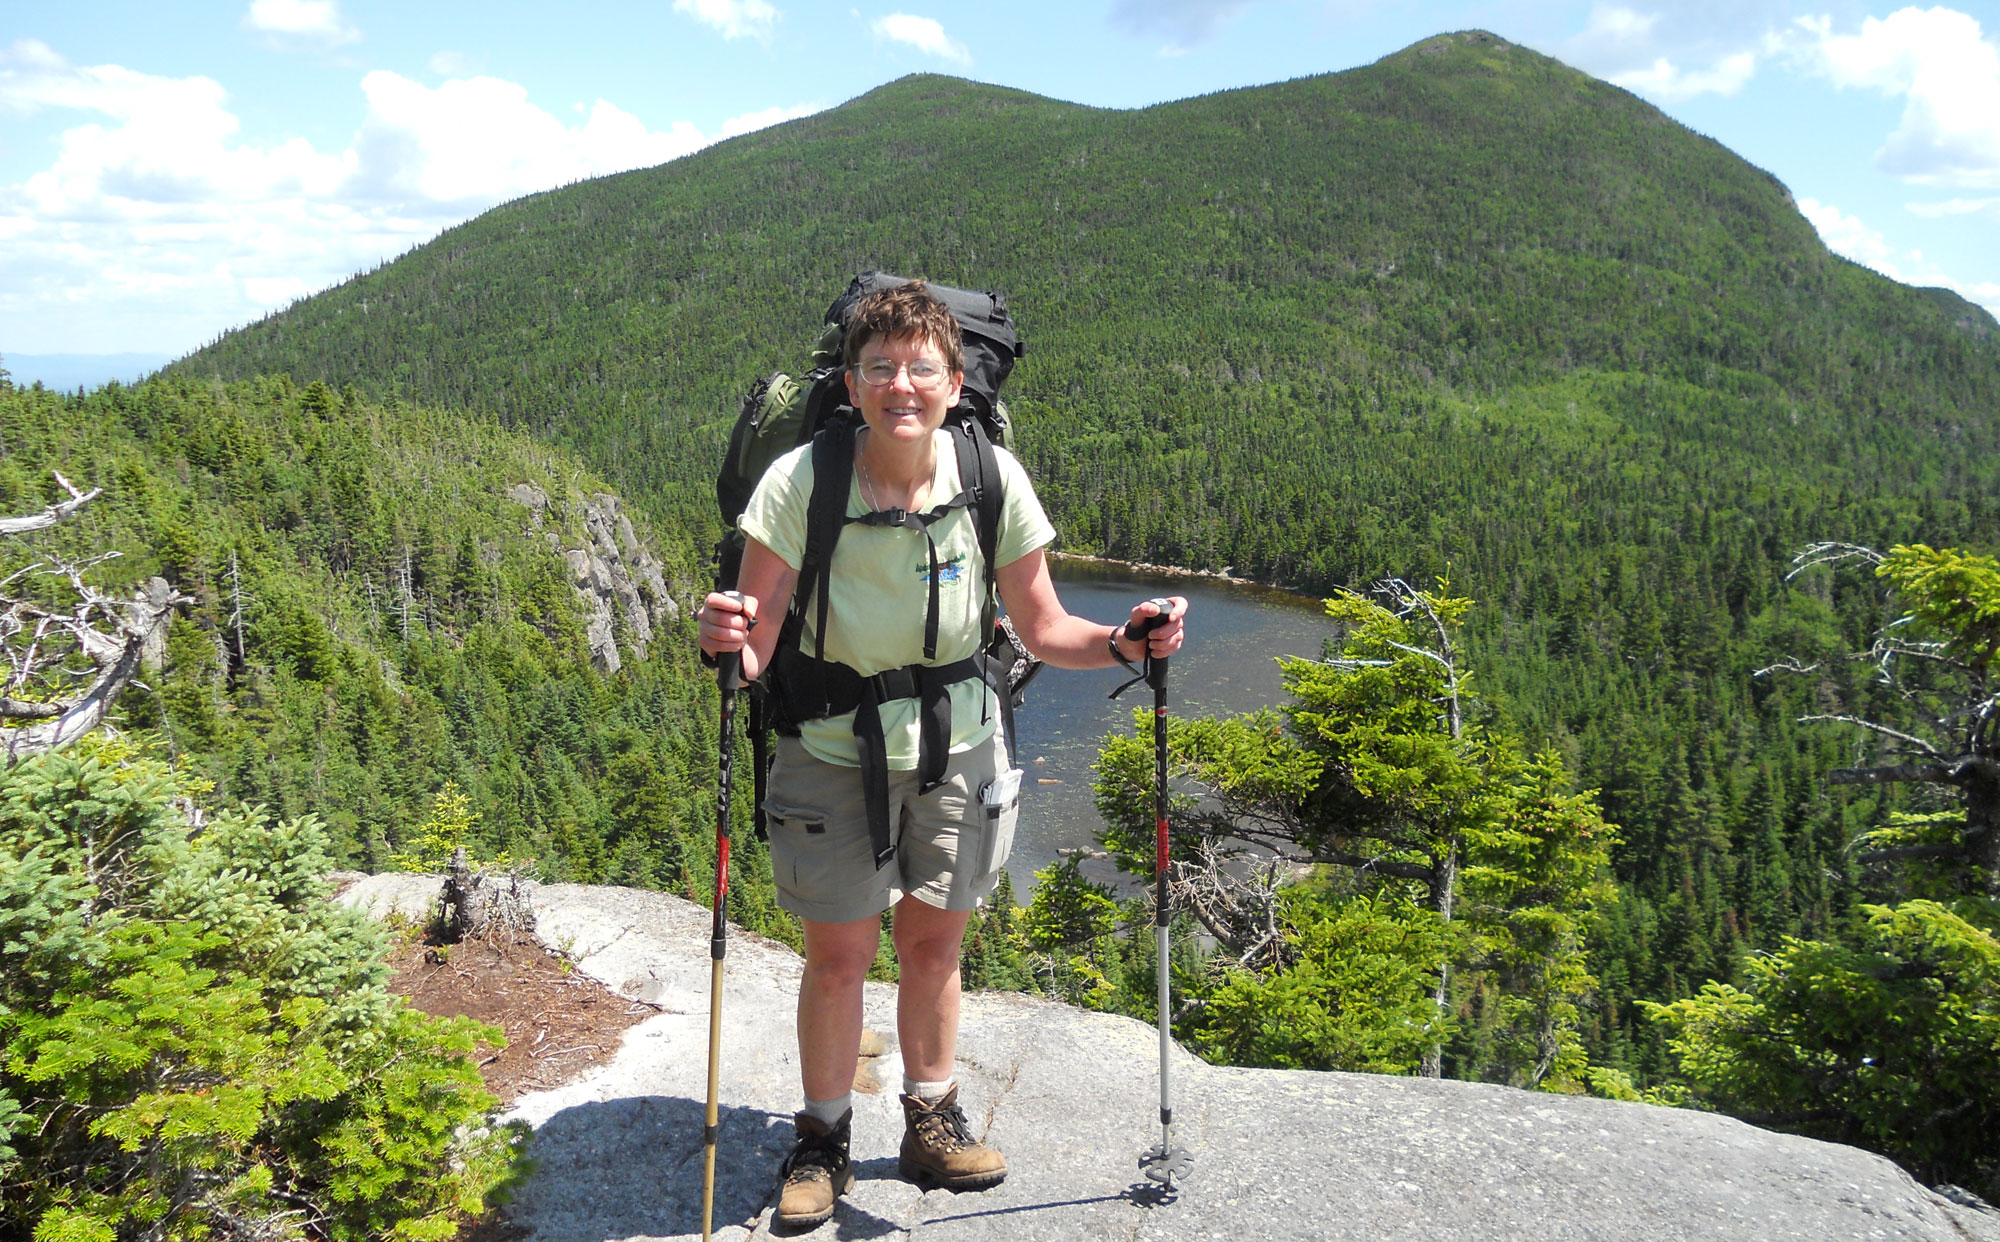 Hiking the Appalachian Trail through the Bigelow Range